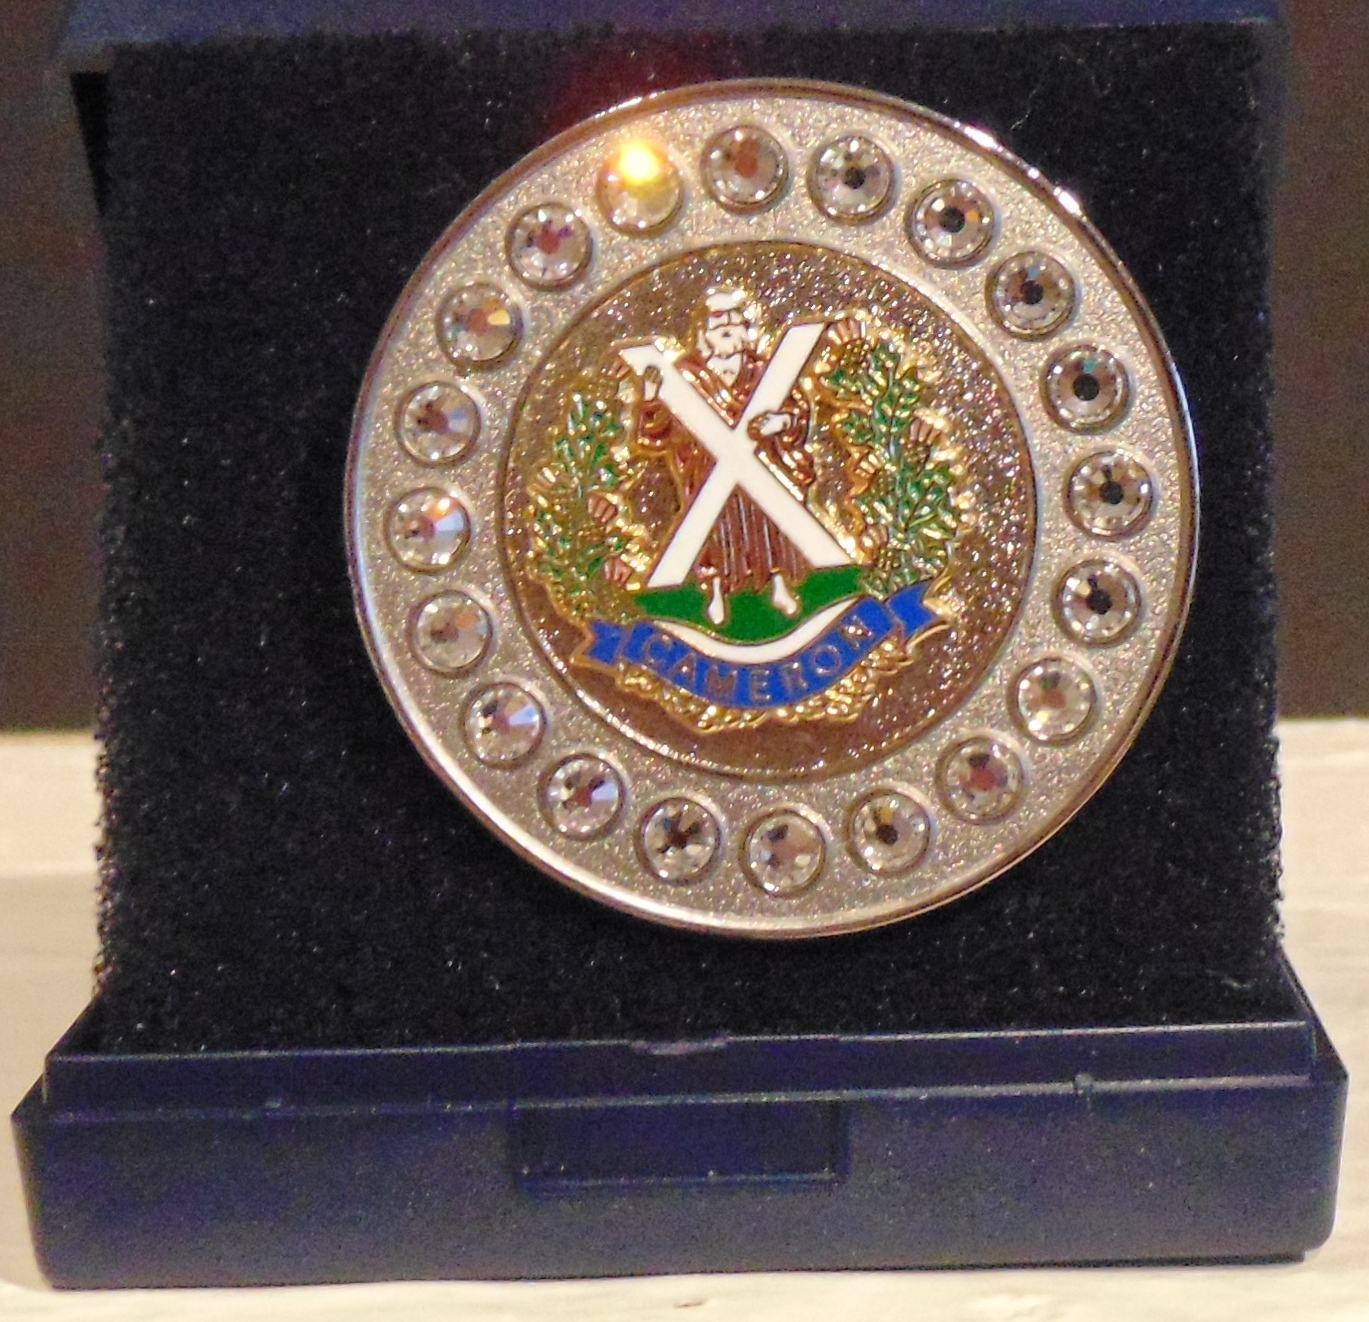 The Queens Own Cameron Highlanders Regimental Brooch